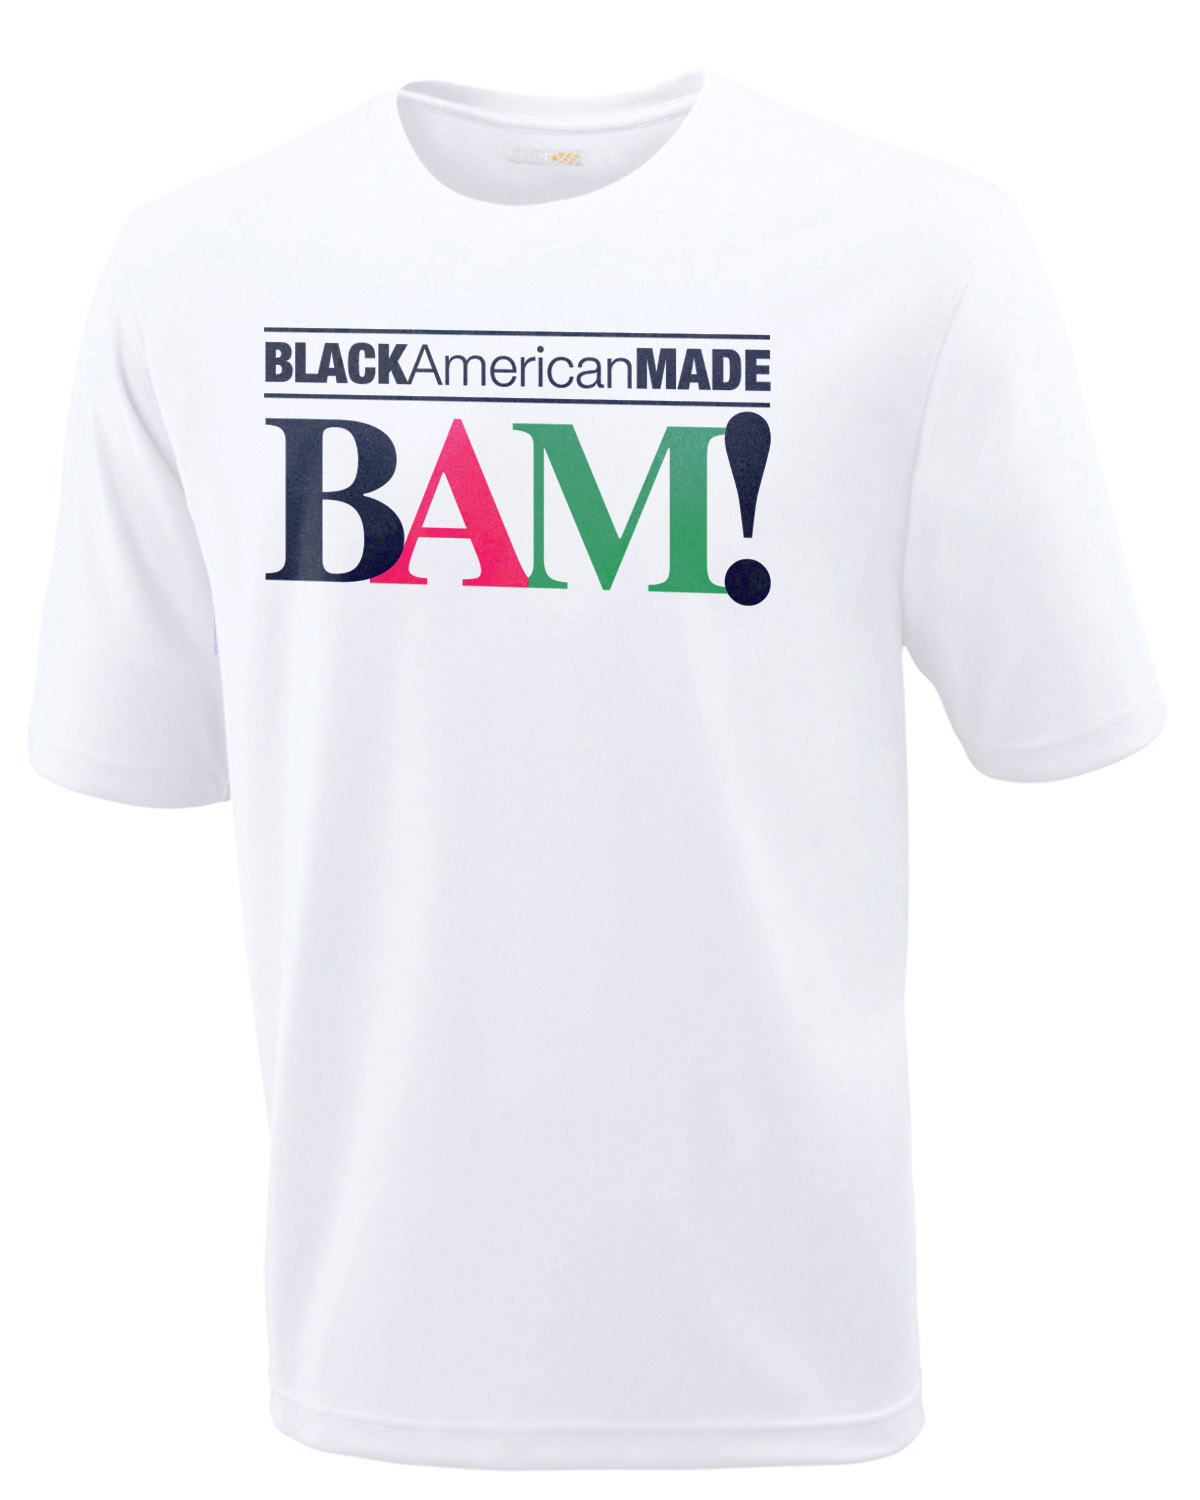 BAM! Tee with Logo & Website on back